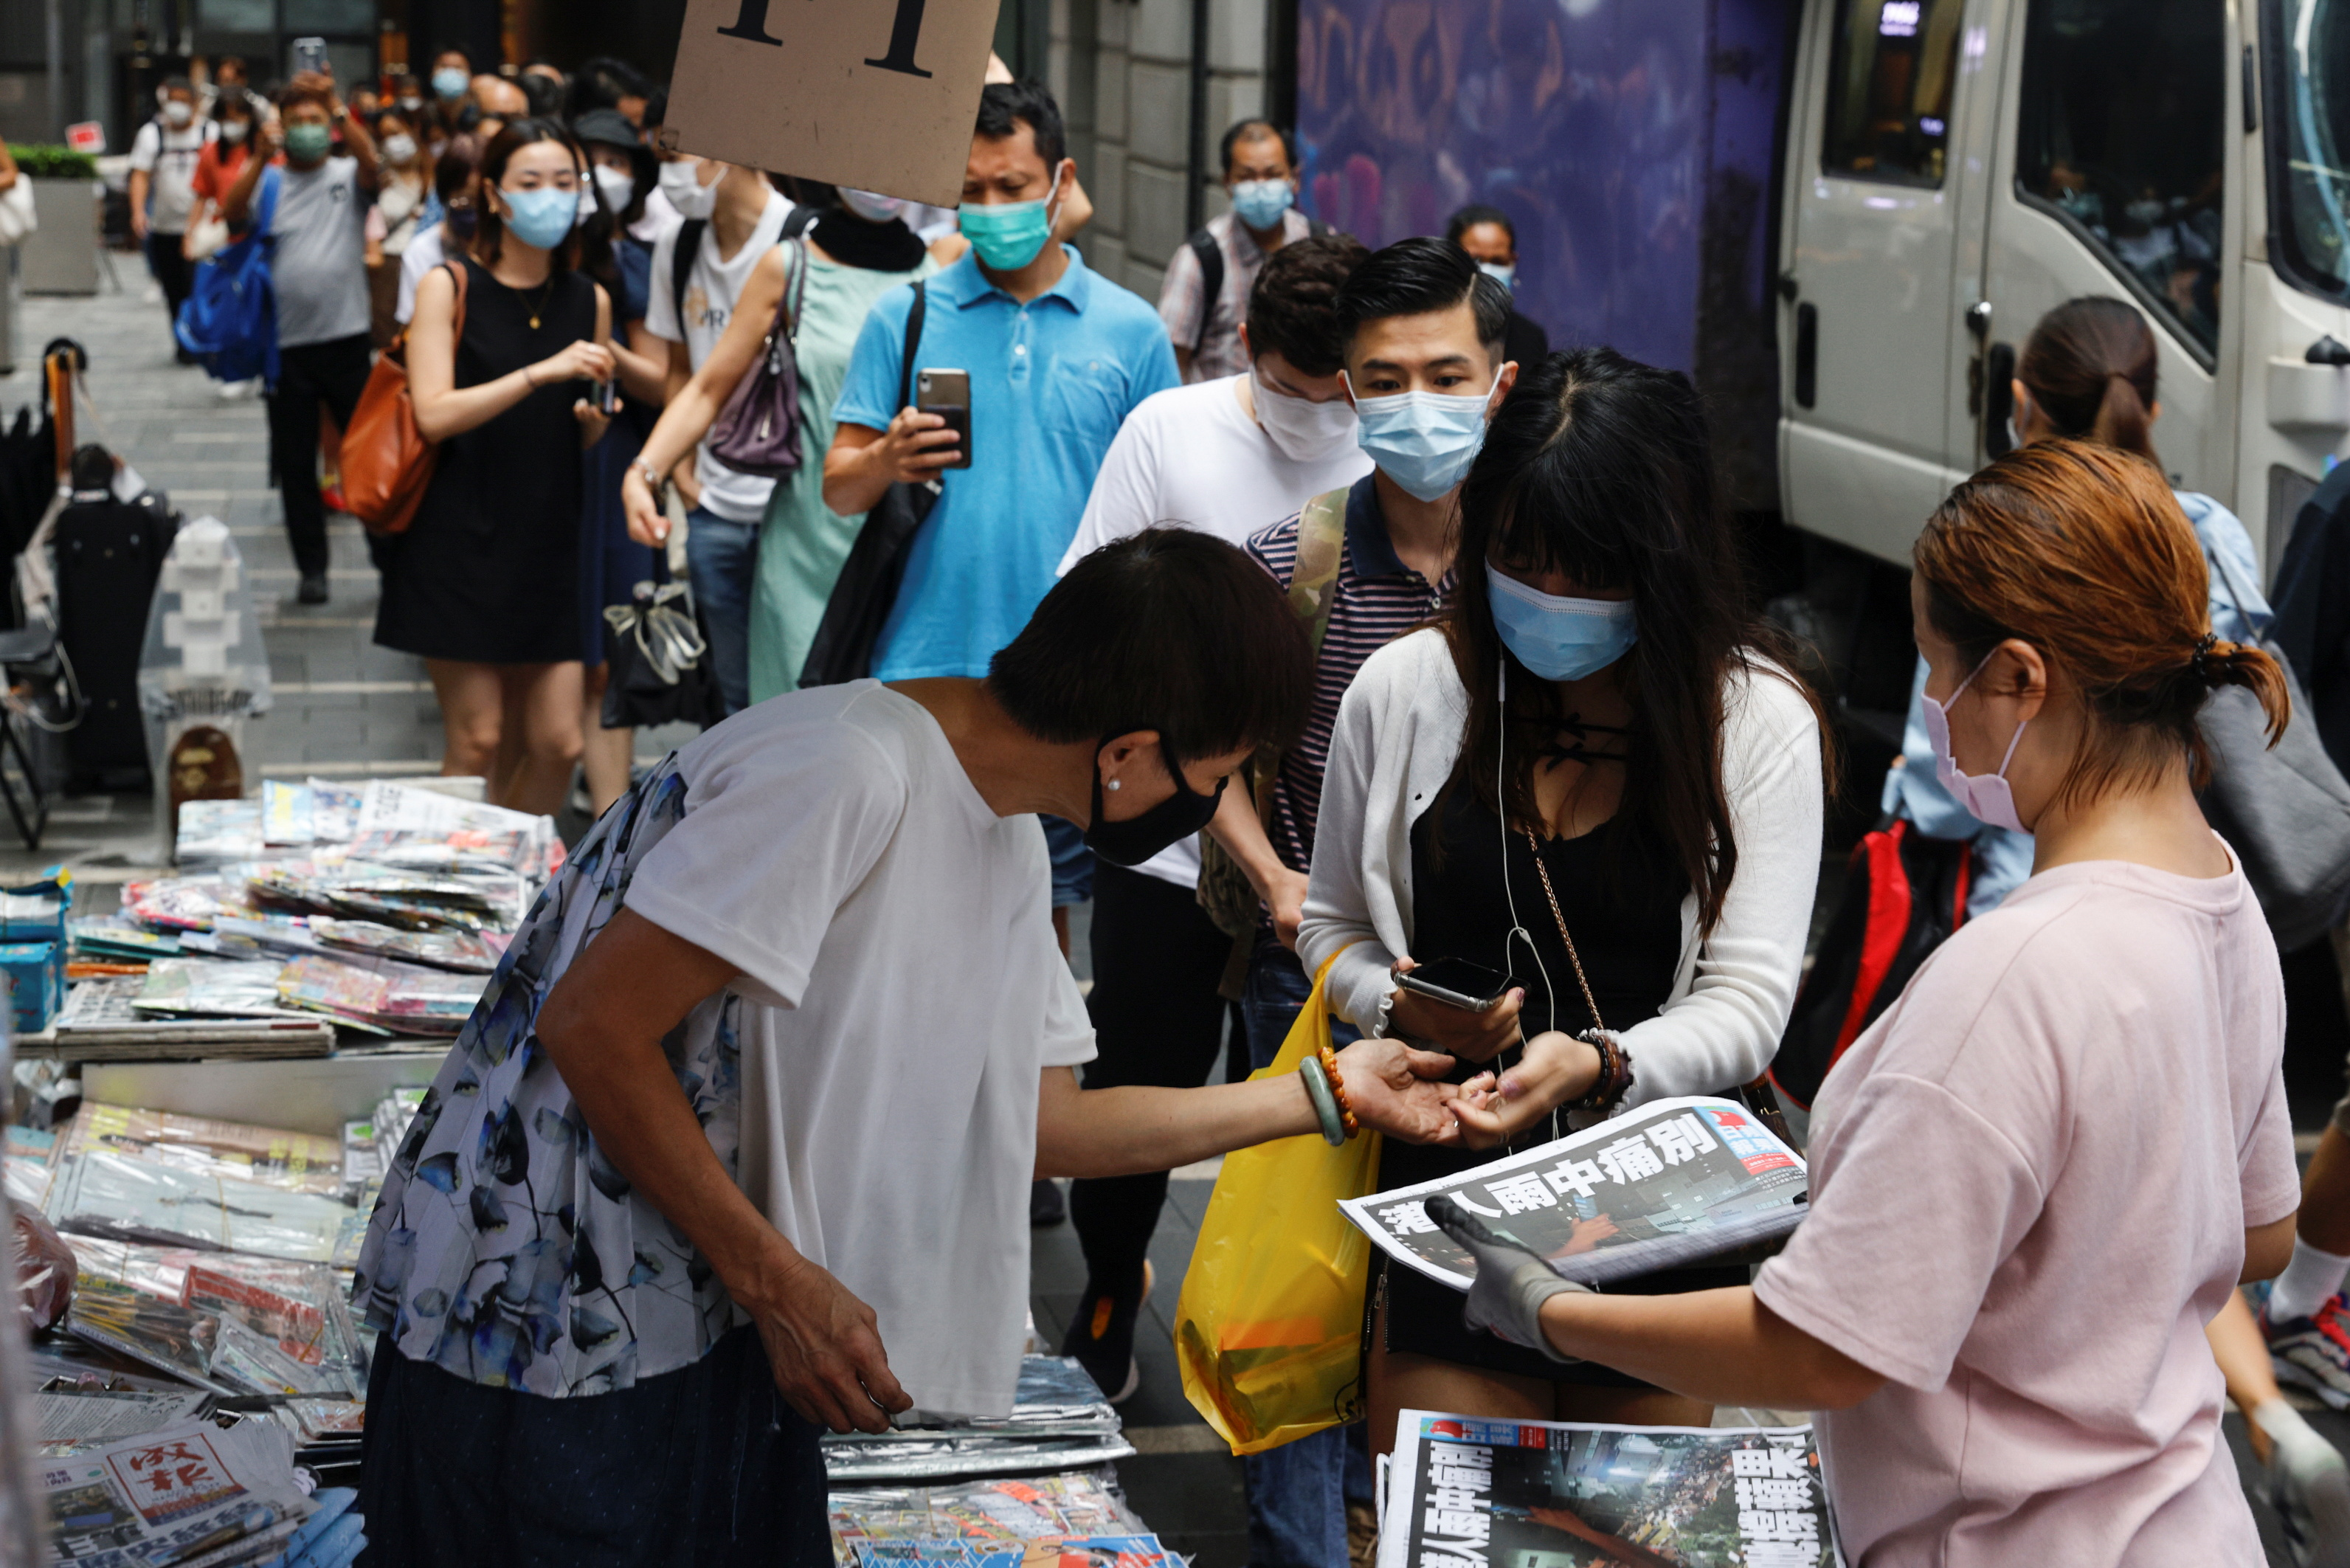 People queue to buy copies of the final edition of Apple Daily, published by Next Digital, in the Central financial district, in Hong Kong, China June 24, 2021. REUTERS/Tyrone Siu